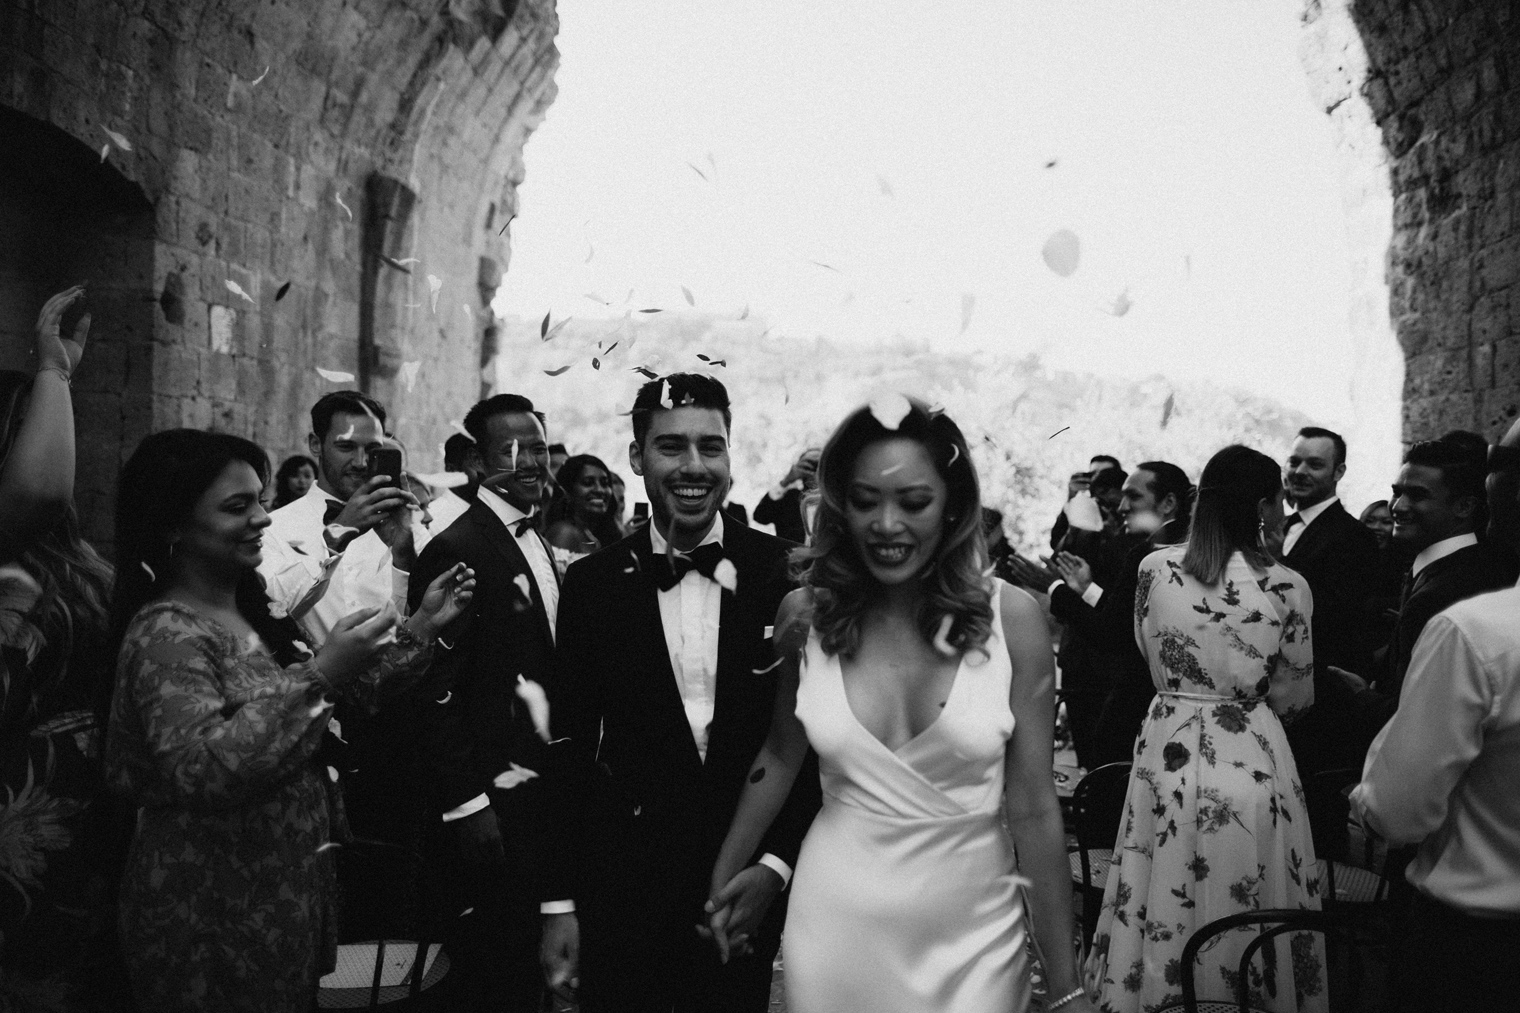 Confetti recession during Italian wedding at La Badia Di Orvieto